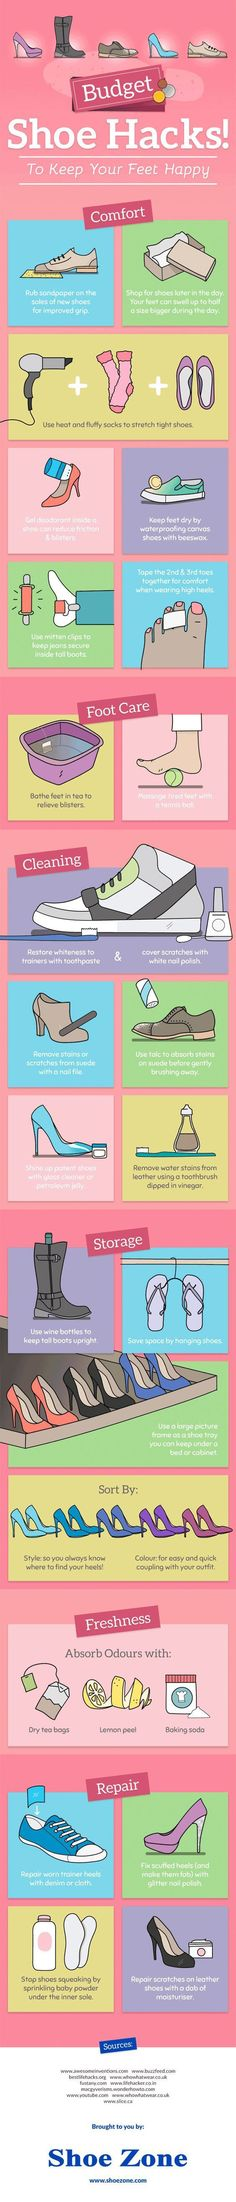 budget shoe hacks to keep your feet happy